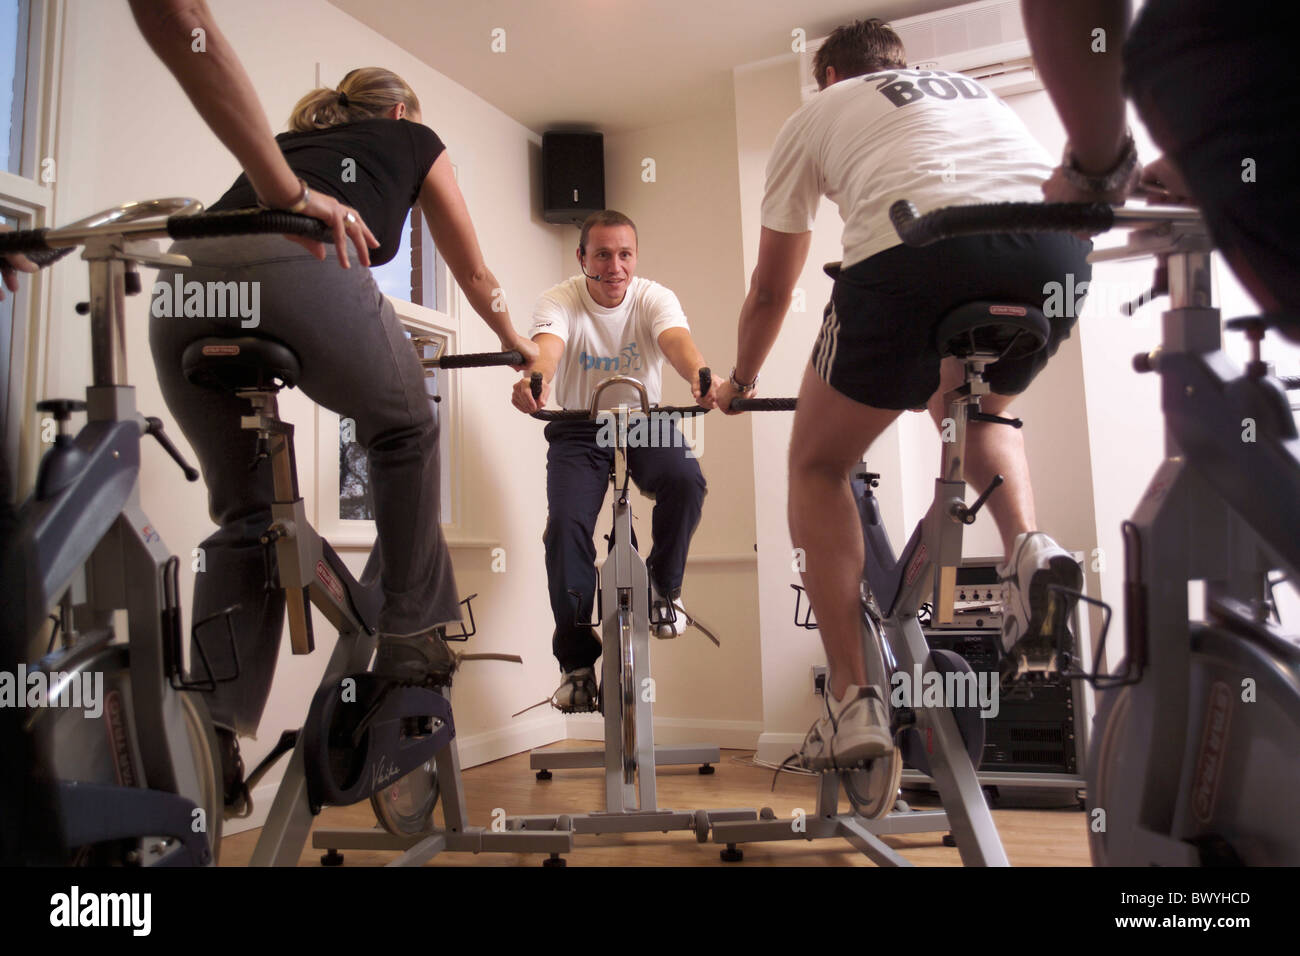 appliances bicycle bike coaches devices Ergometer Fitness